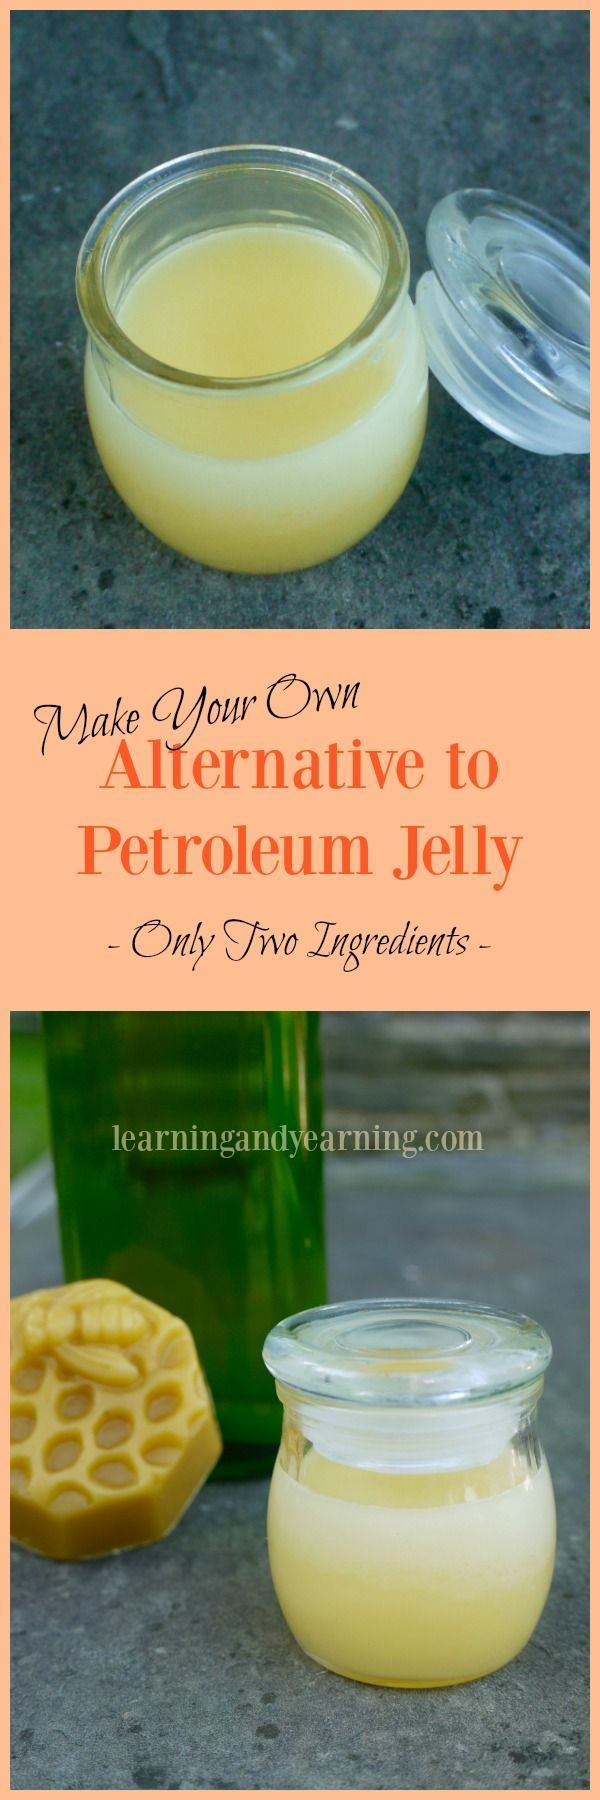 If you're looking for an alternative to petroleum jelly, it couldn't be easier…